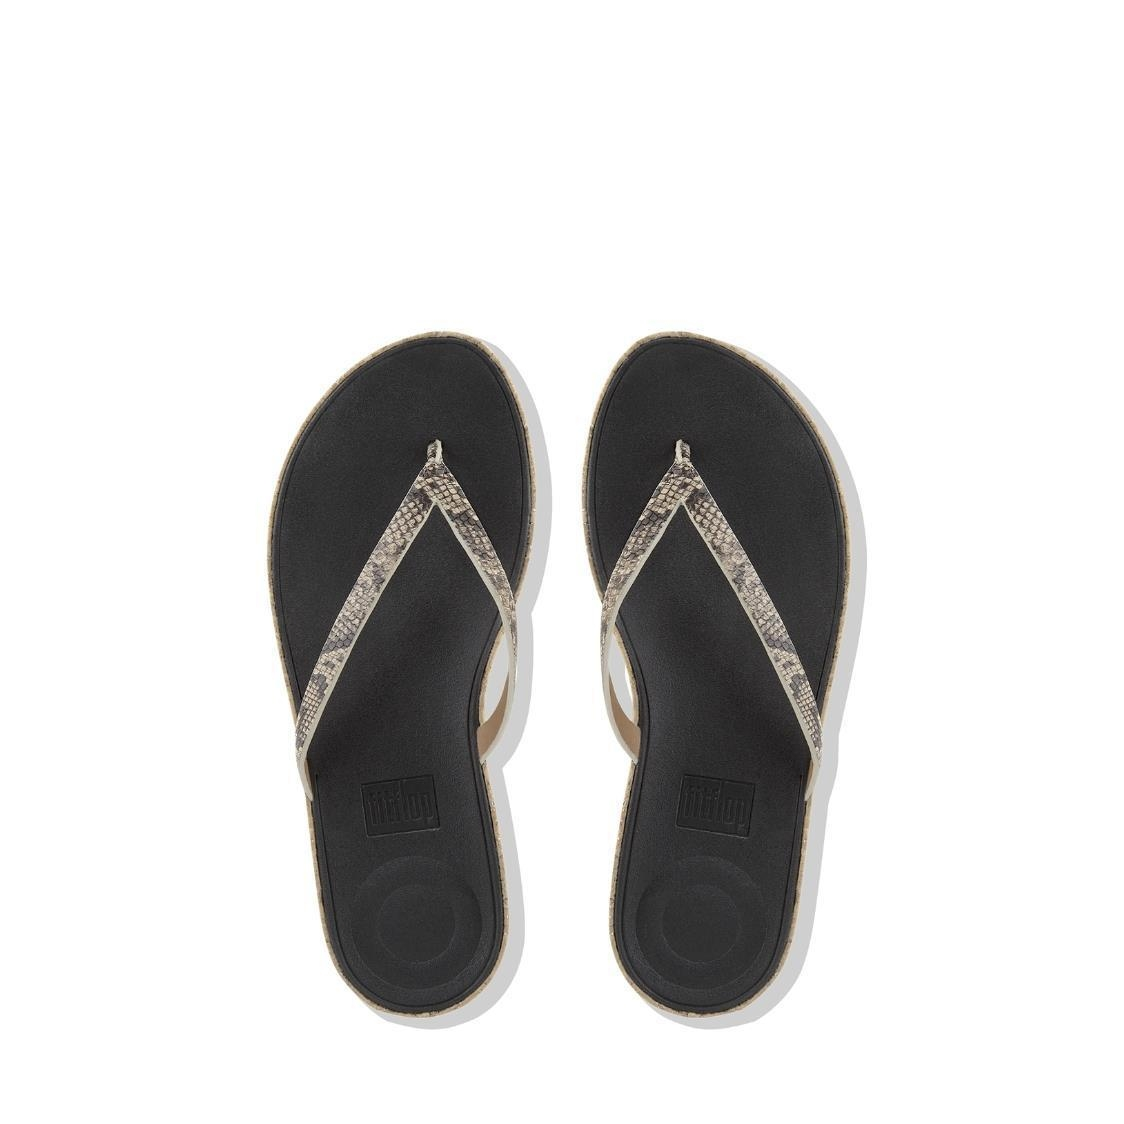 Linny Leather Toe-Thong Sandals Taupe Snake